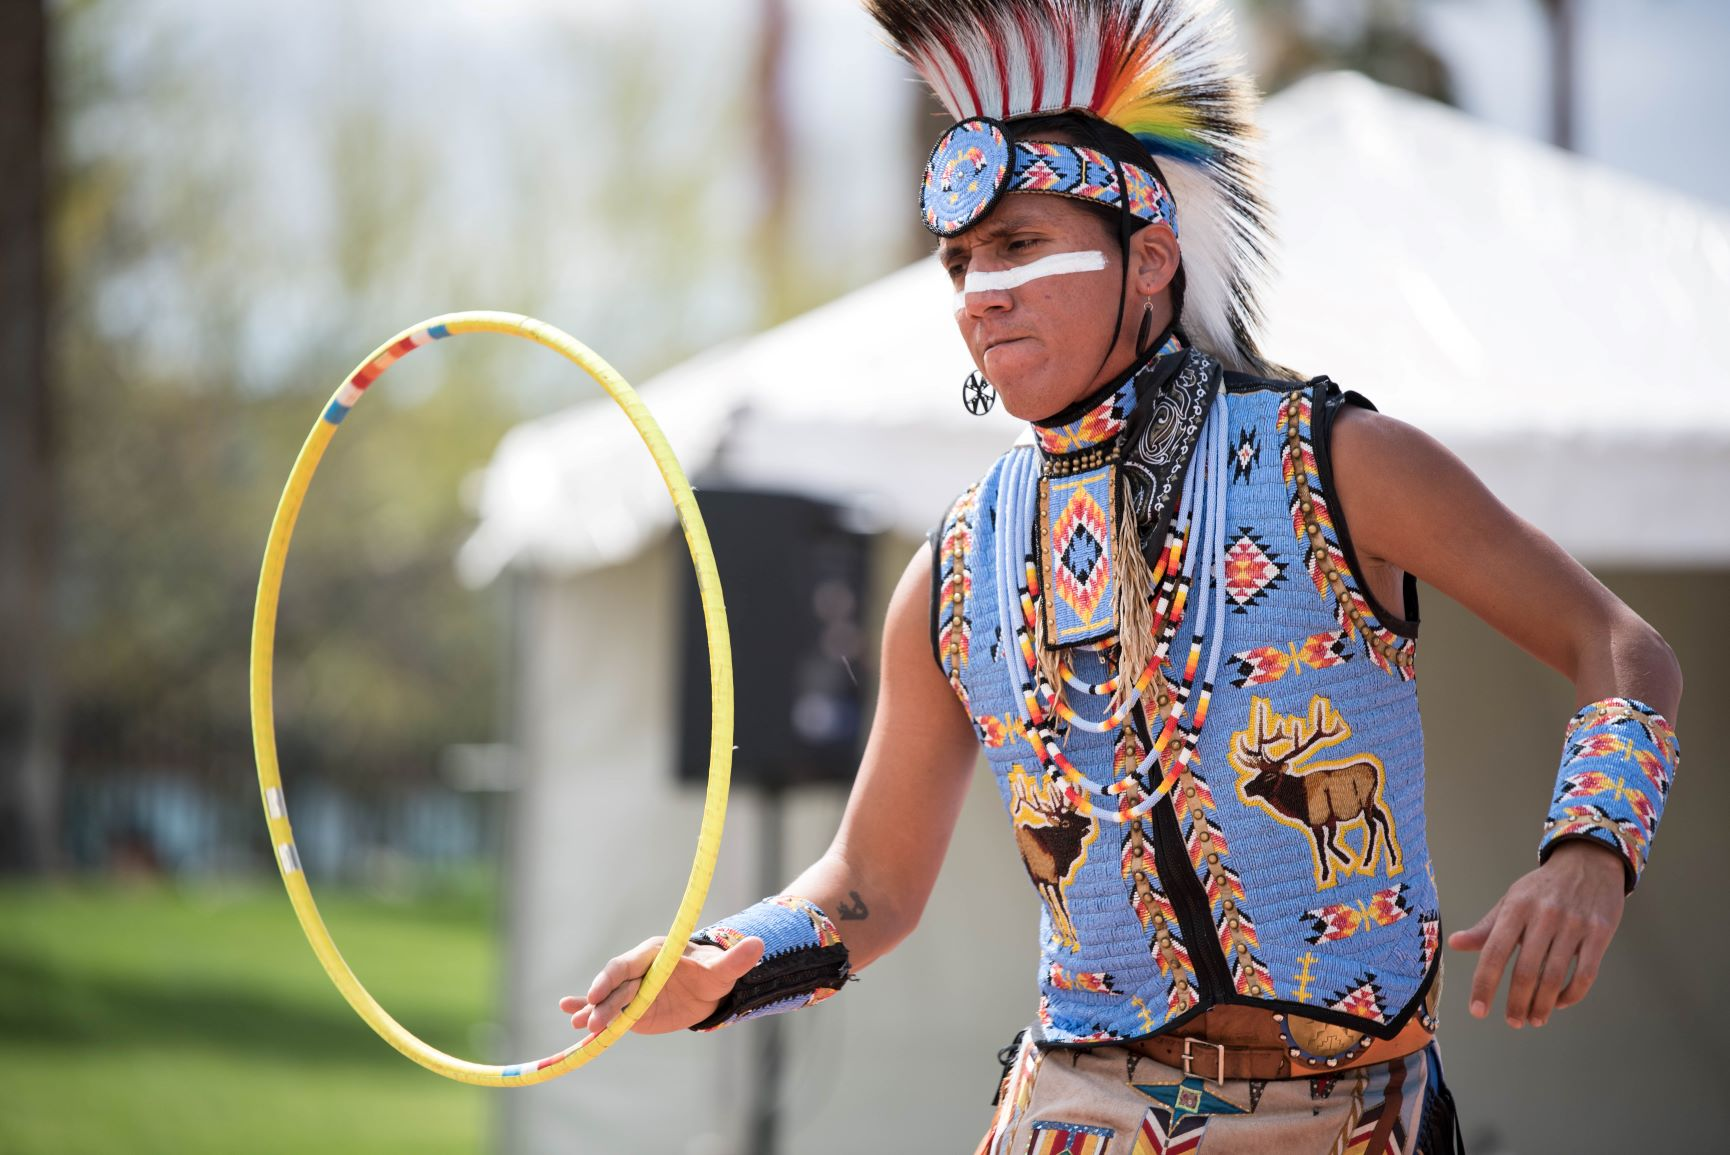 Man in traditional Native headress and light blue vest dances outdoors while holding yellow hoop